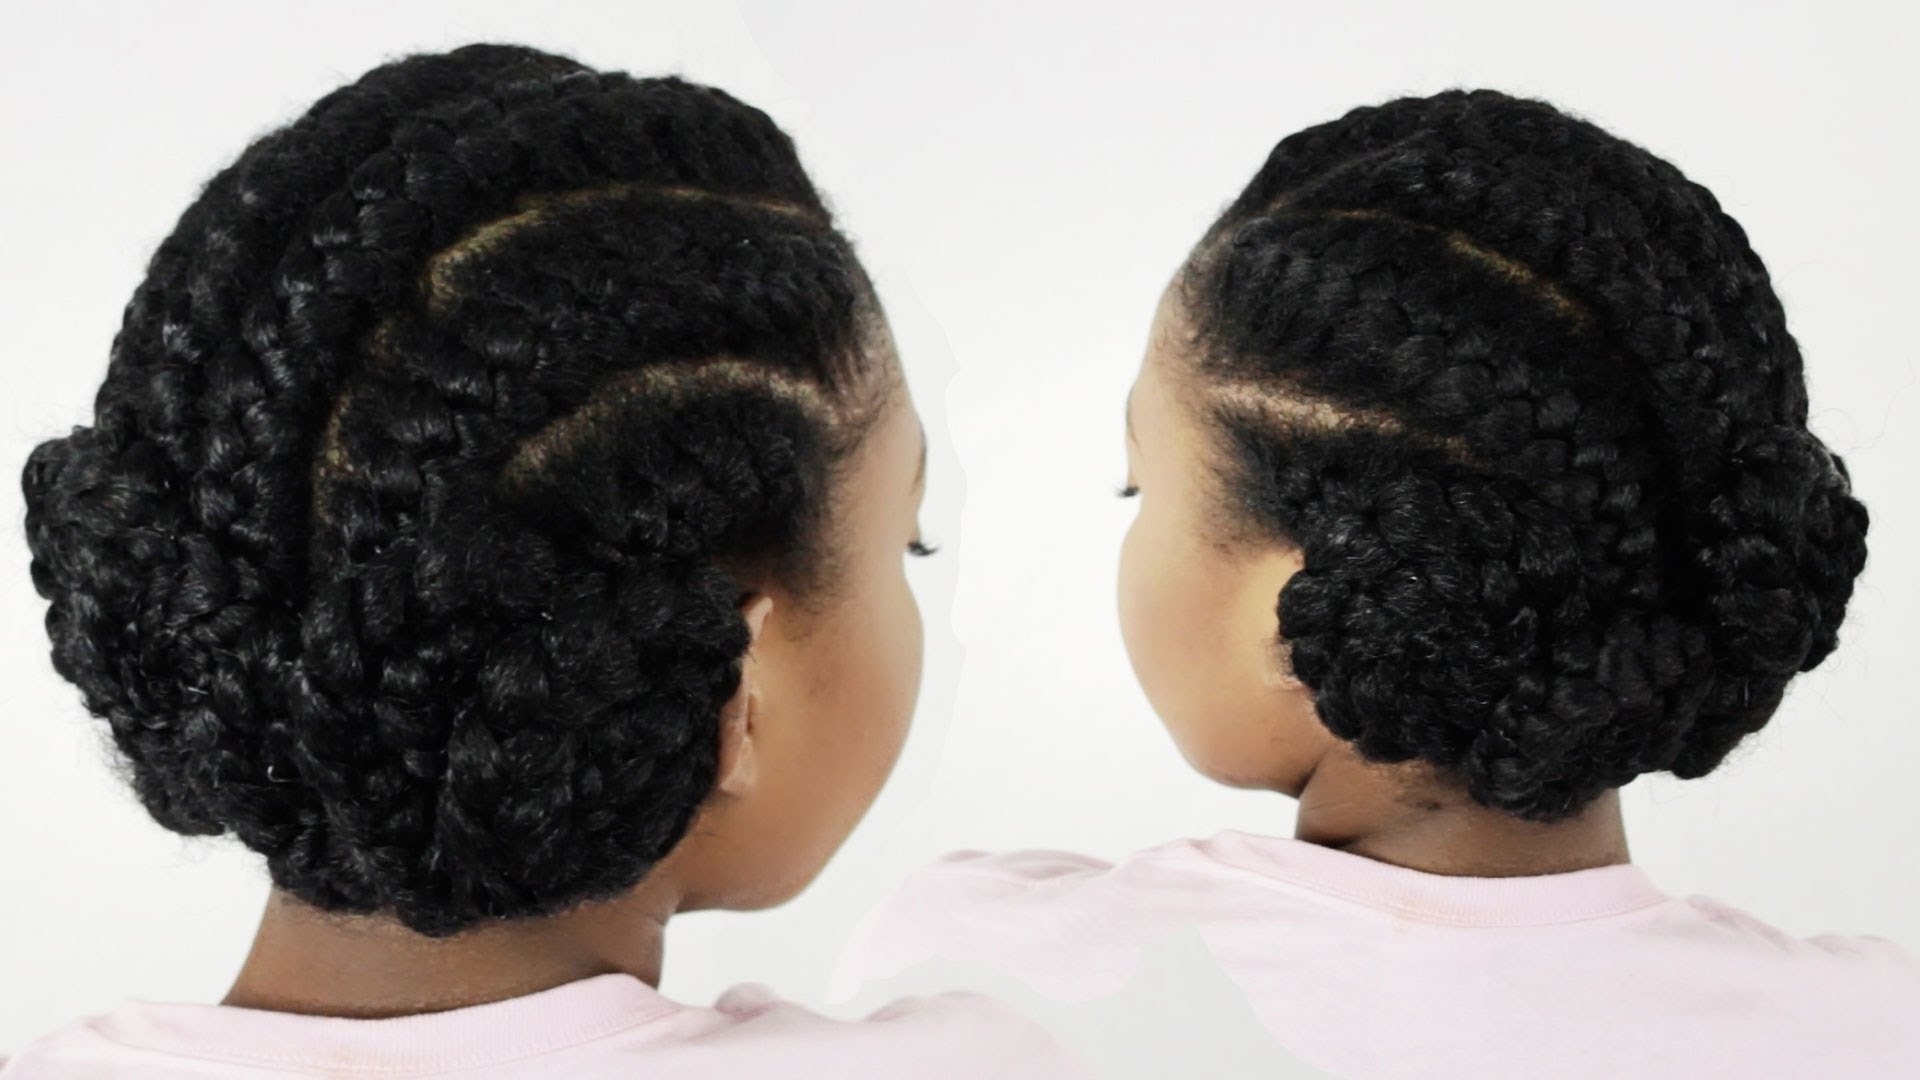 Current Cornrows Hairstyles In A Bun In Goddess Braids Pinwheel Bun: Under Braid Hairstyles For Black Women (View 9 of 15)